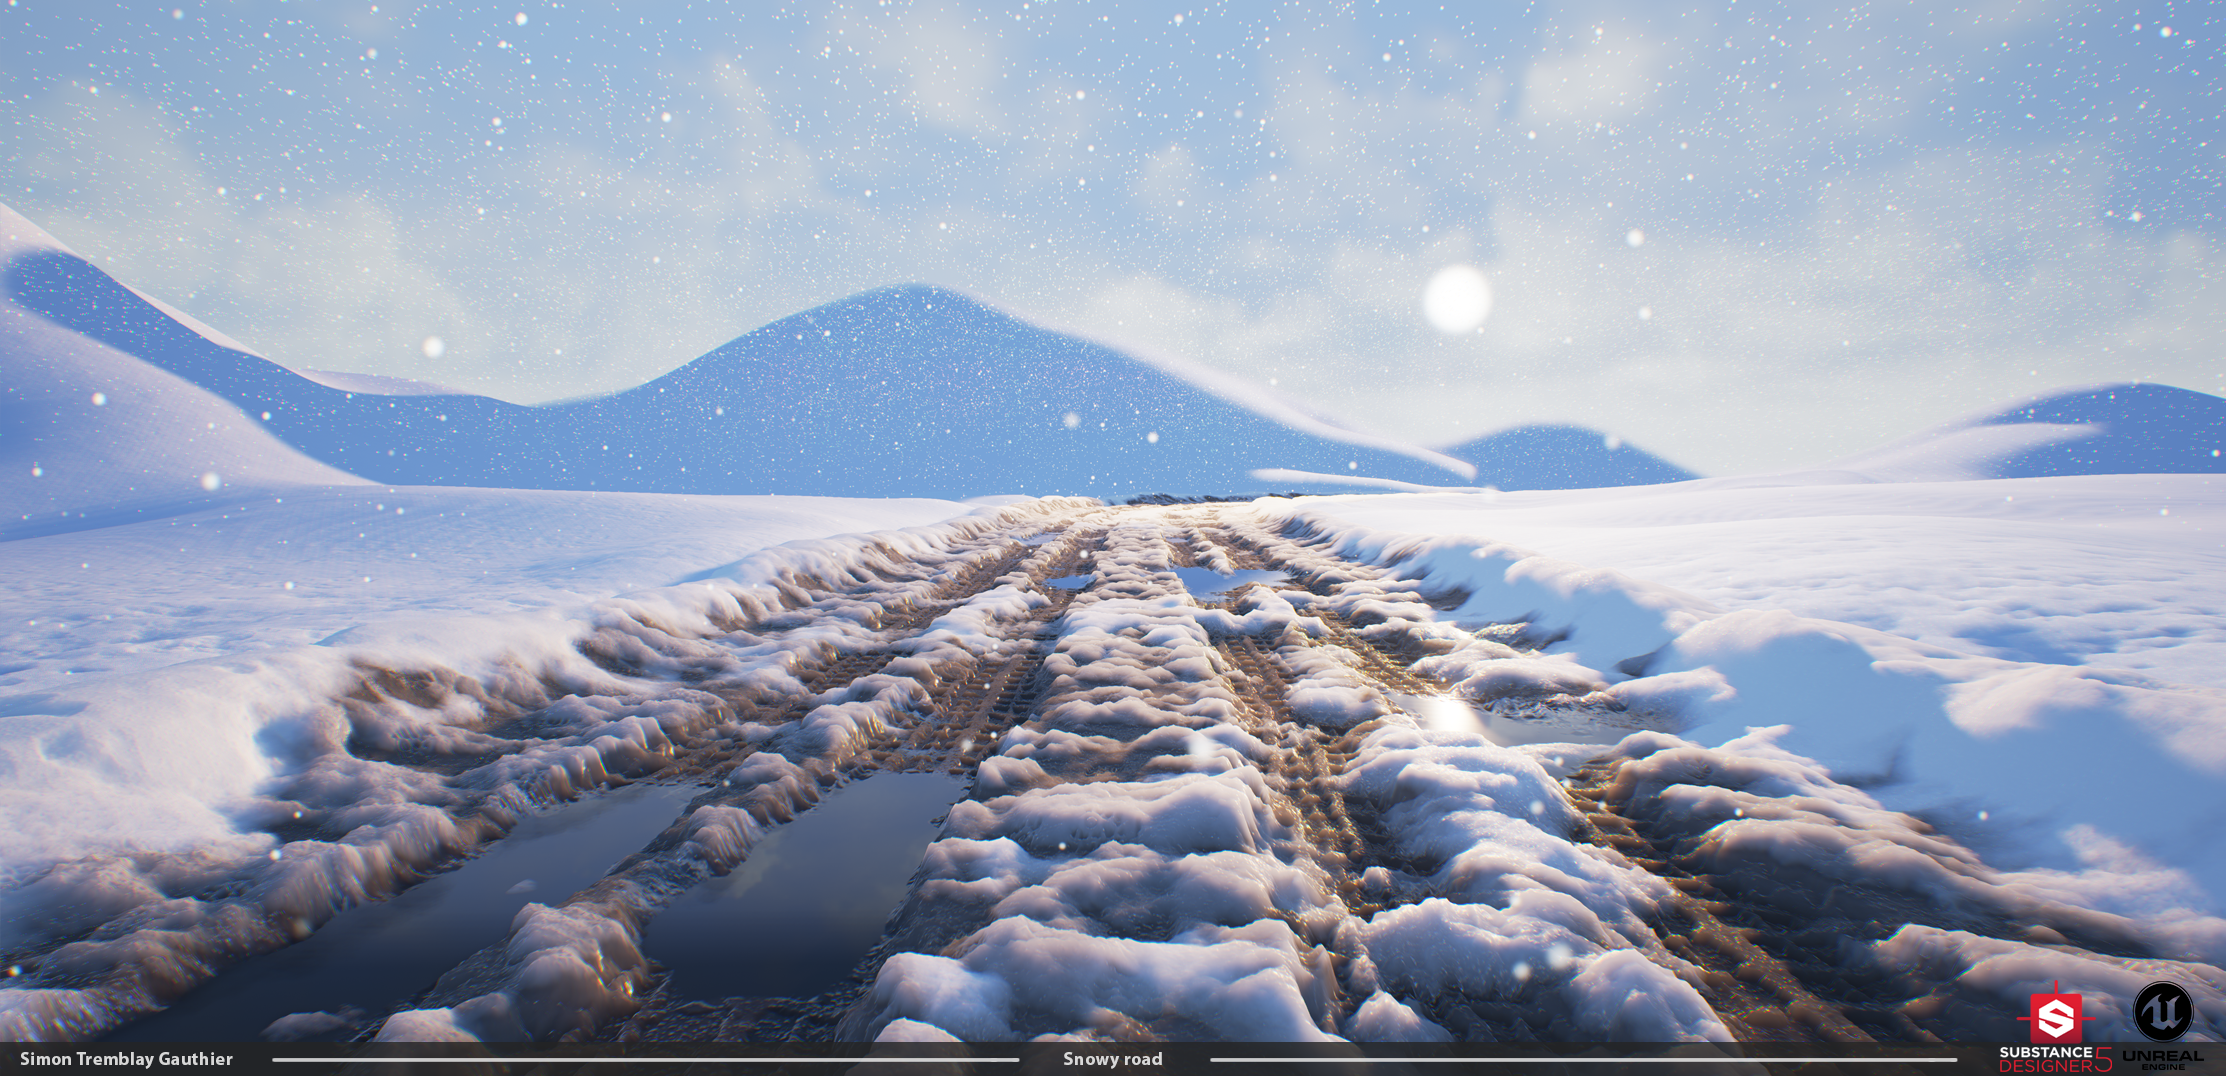 Substance/UE4] - Snow road scene — polycount